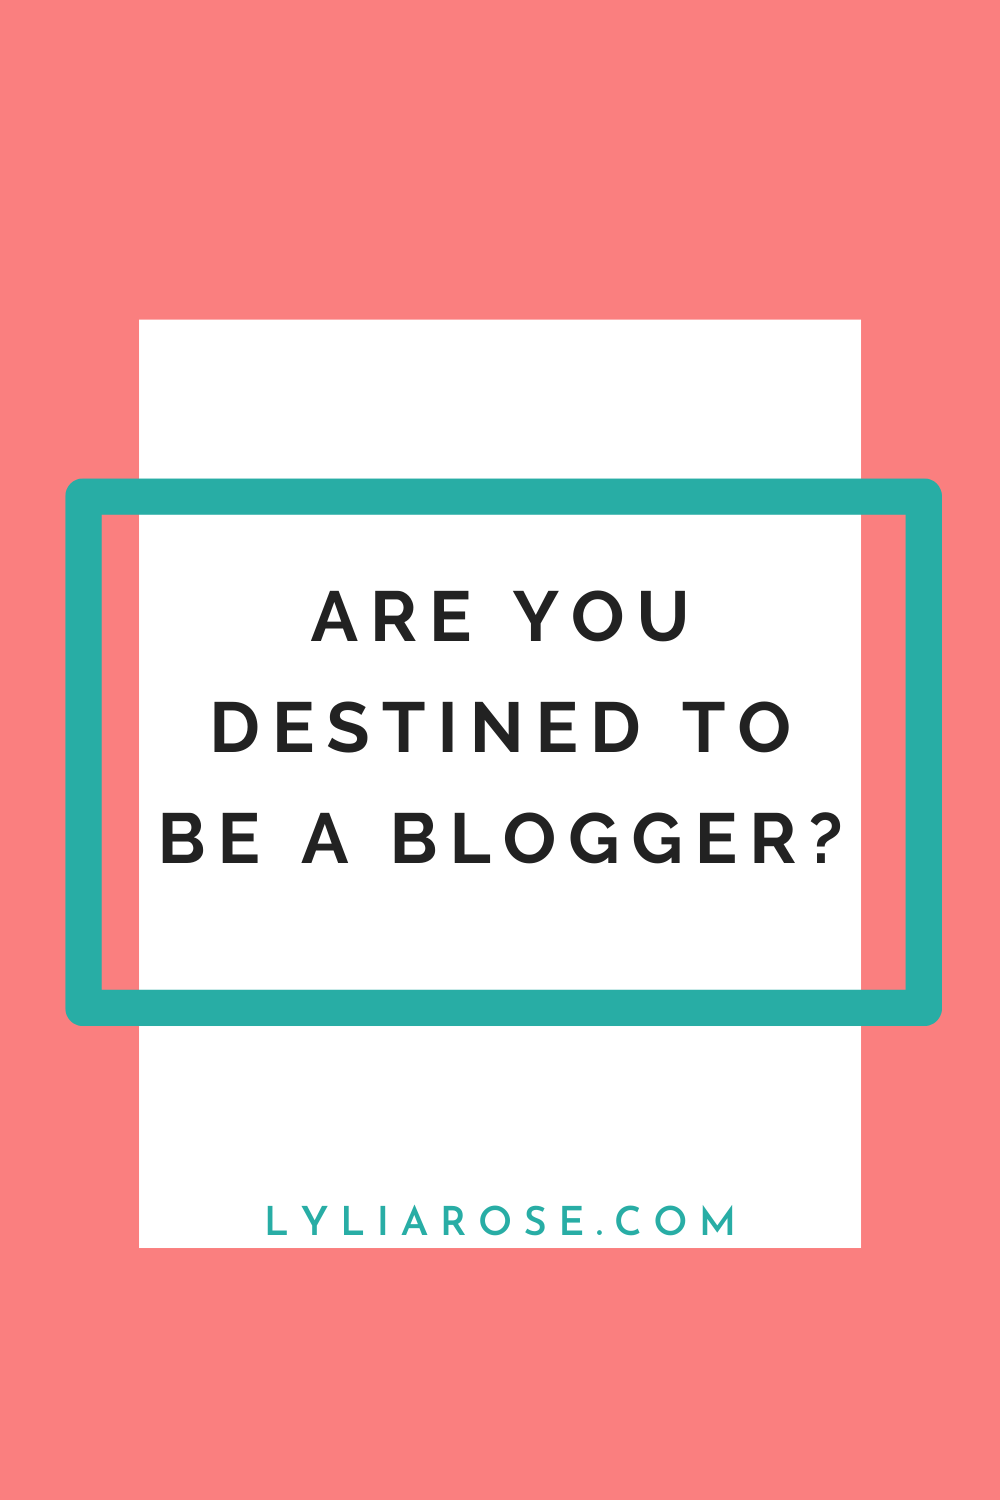 Are you destined to be a blogger